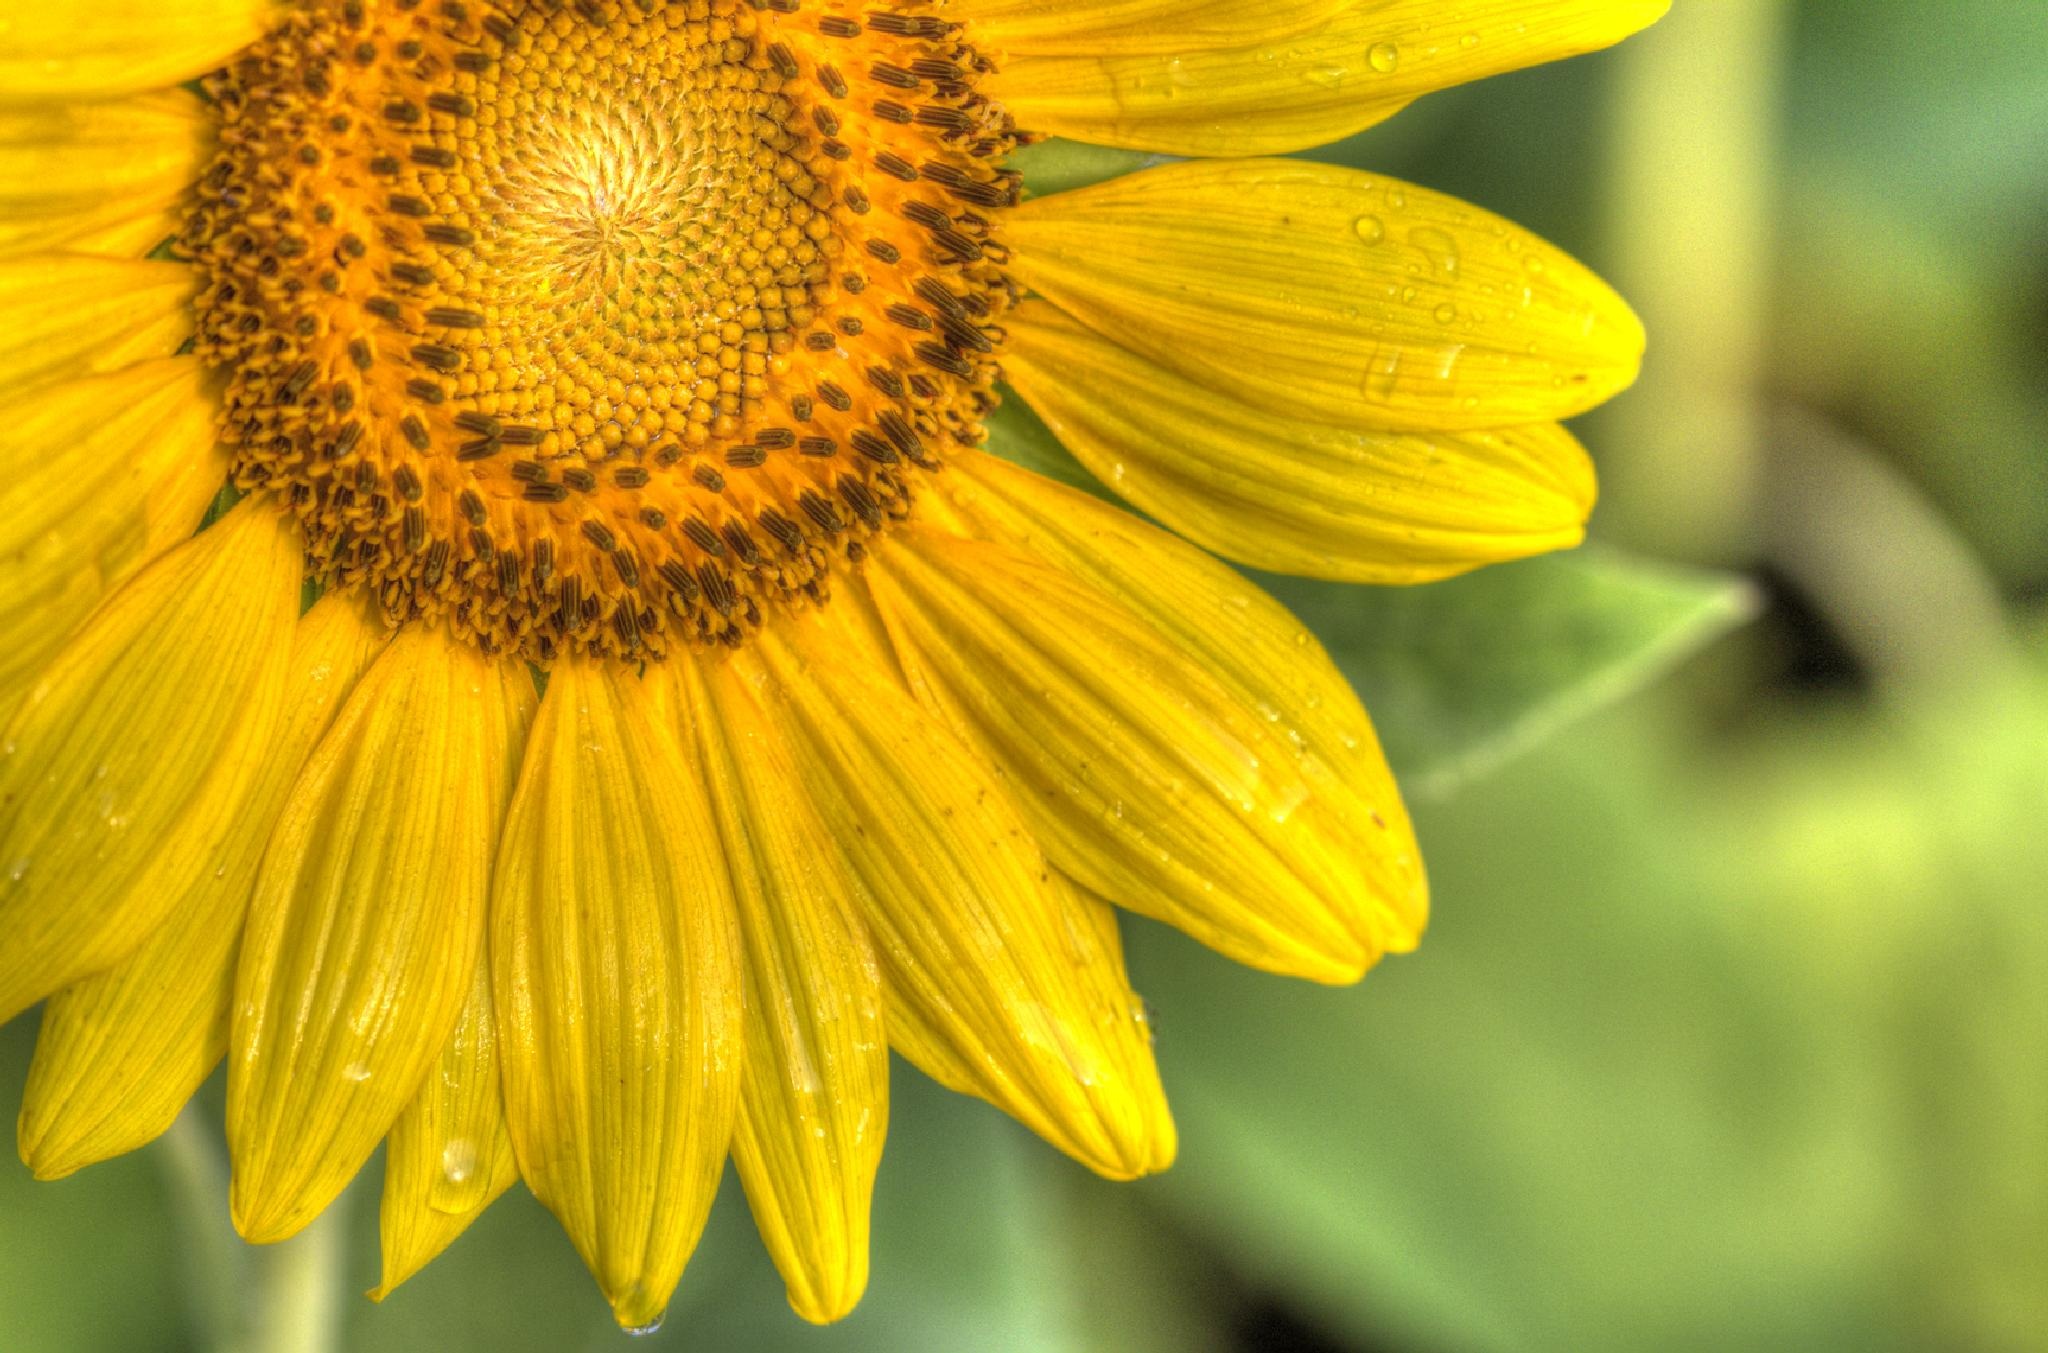 Dew Drops on a Sunflower by David Foster